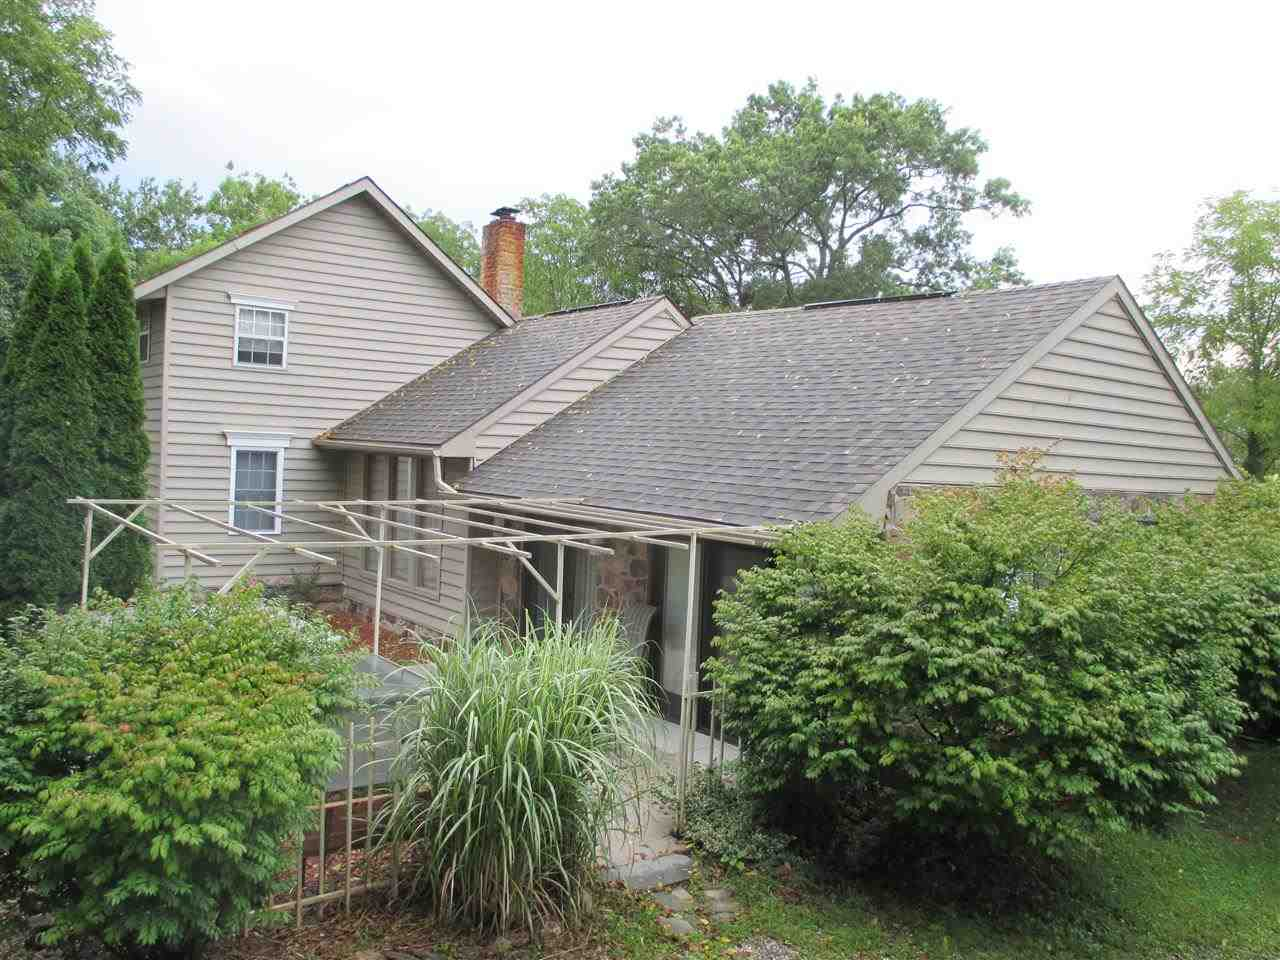 370 Oxford Rd, New Oxford, PA 17350